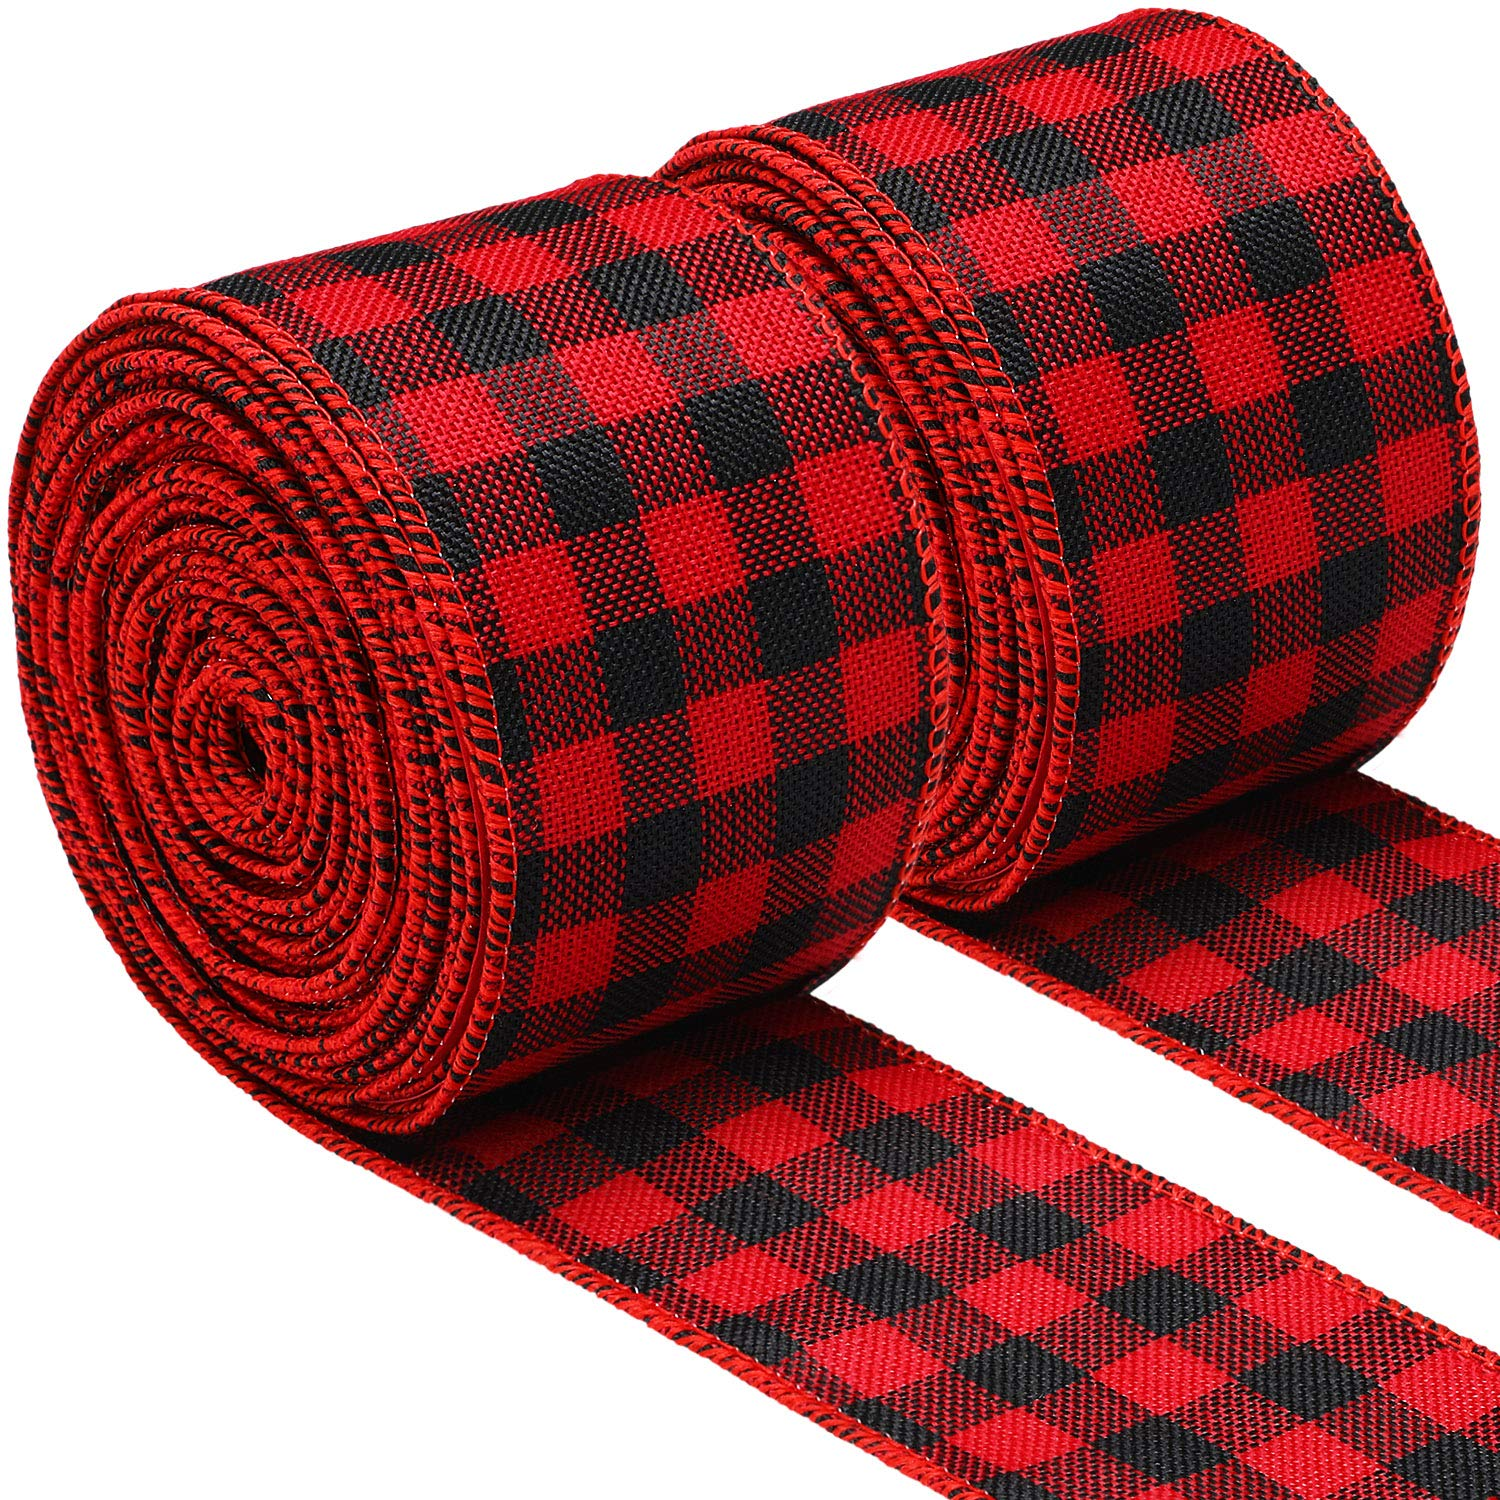 2 Rolls 2.5 Inch Wide Christmas Ribbon Red and Black Plaid Wired Ribbon Christmas Wrapping Crafts Ribbon for Gift Wrapping Supplies 472 Inch Long Total